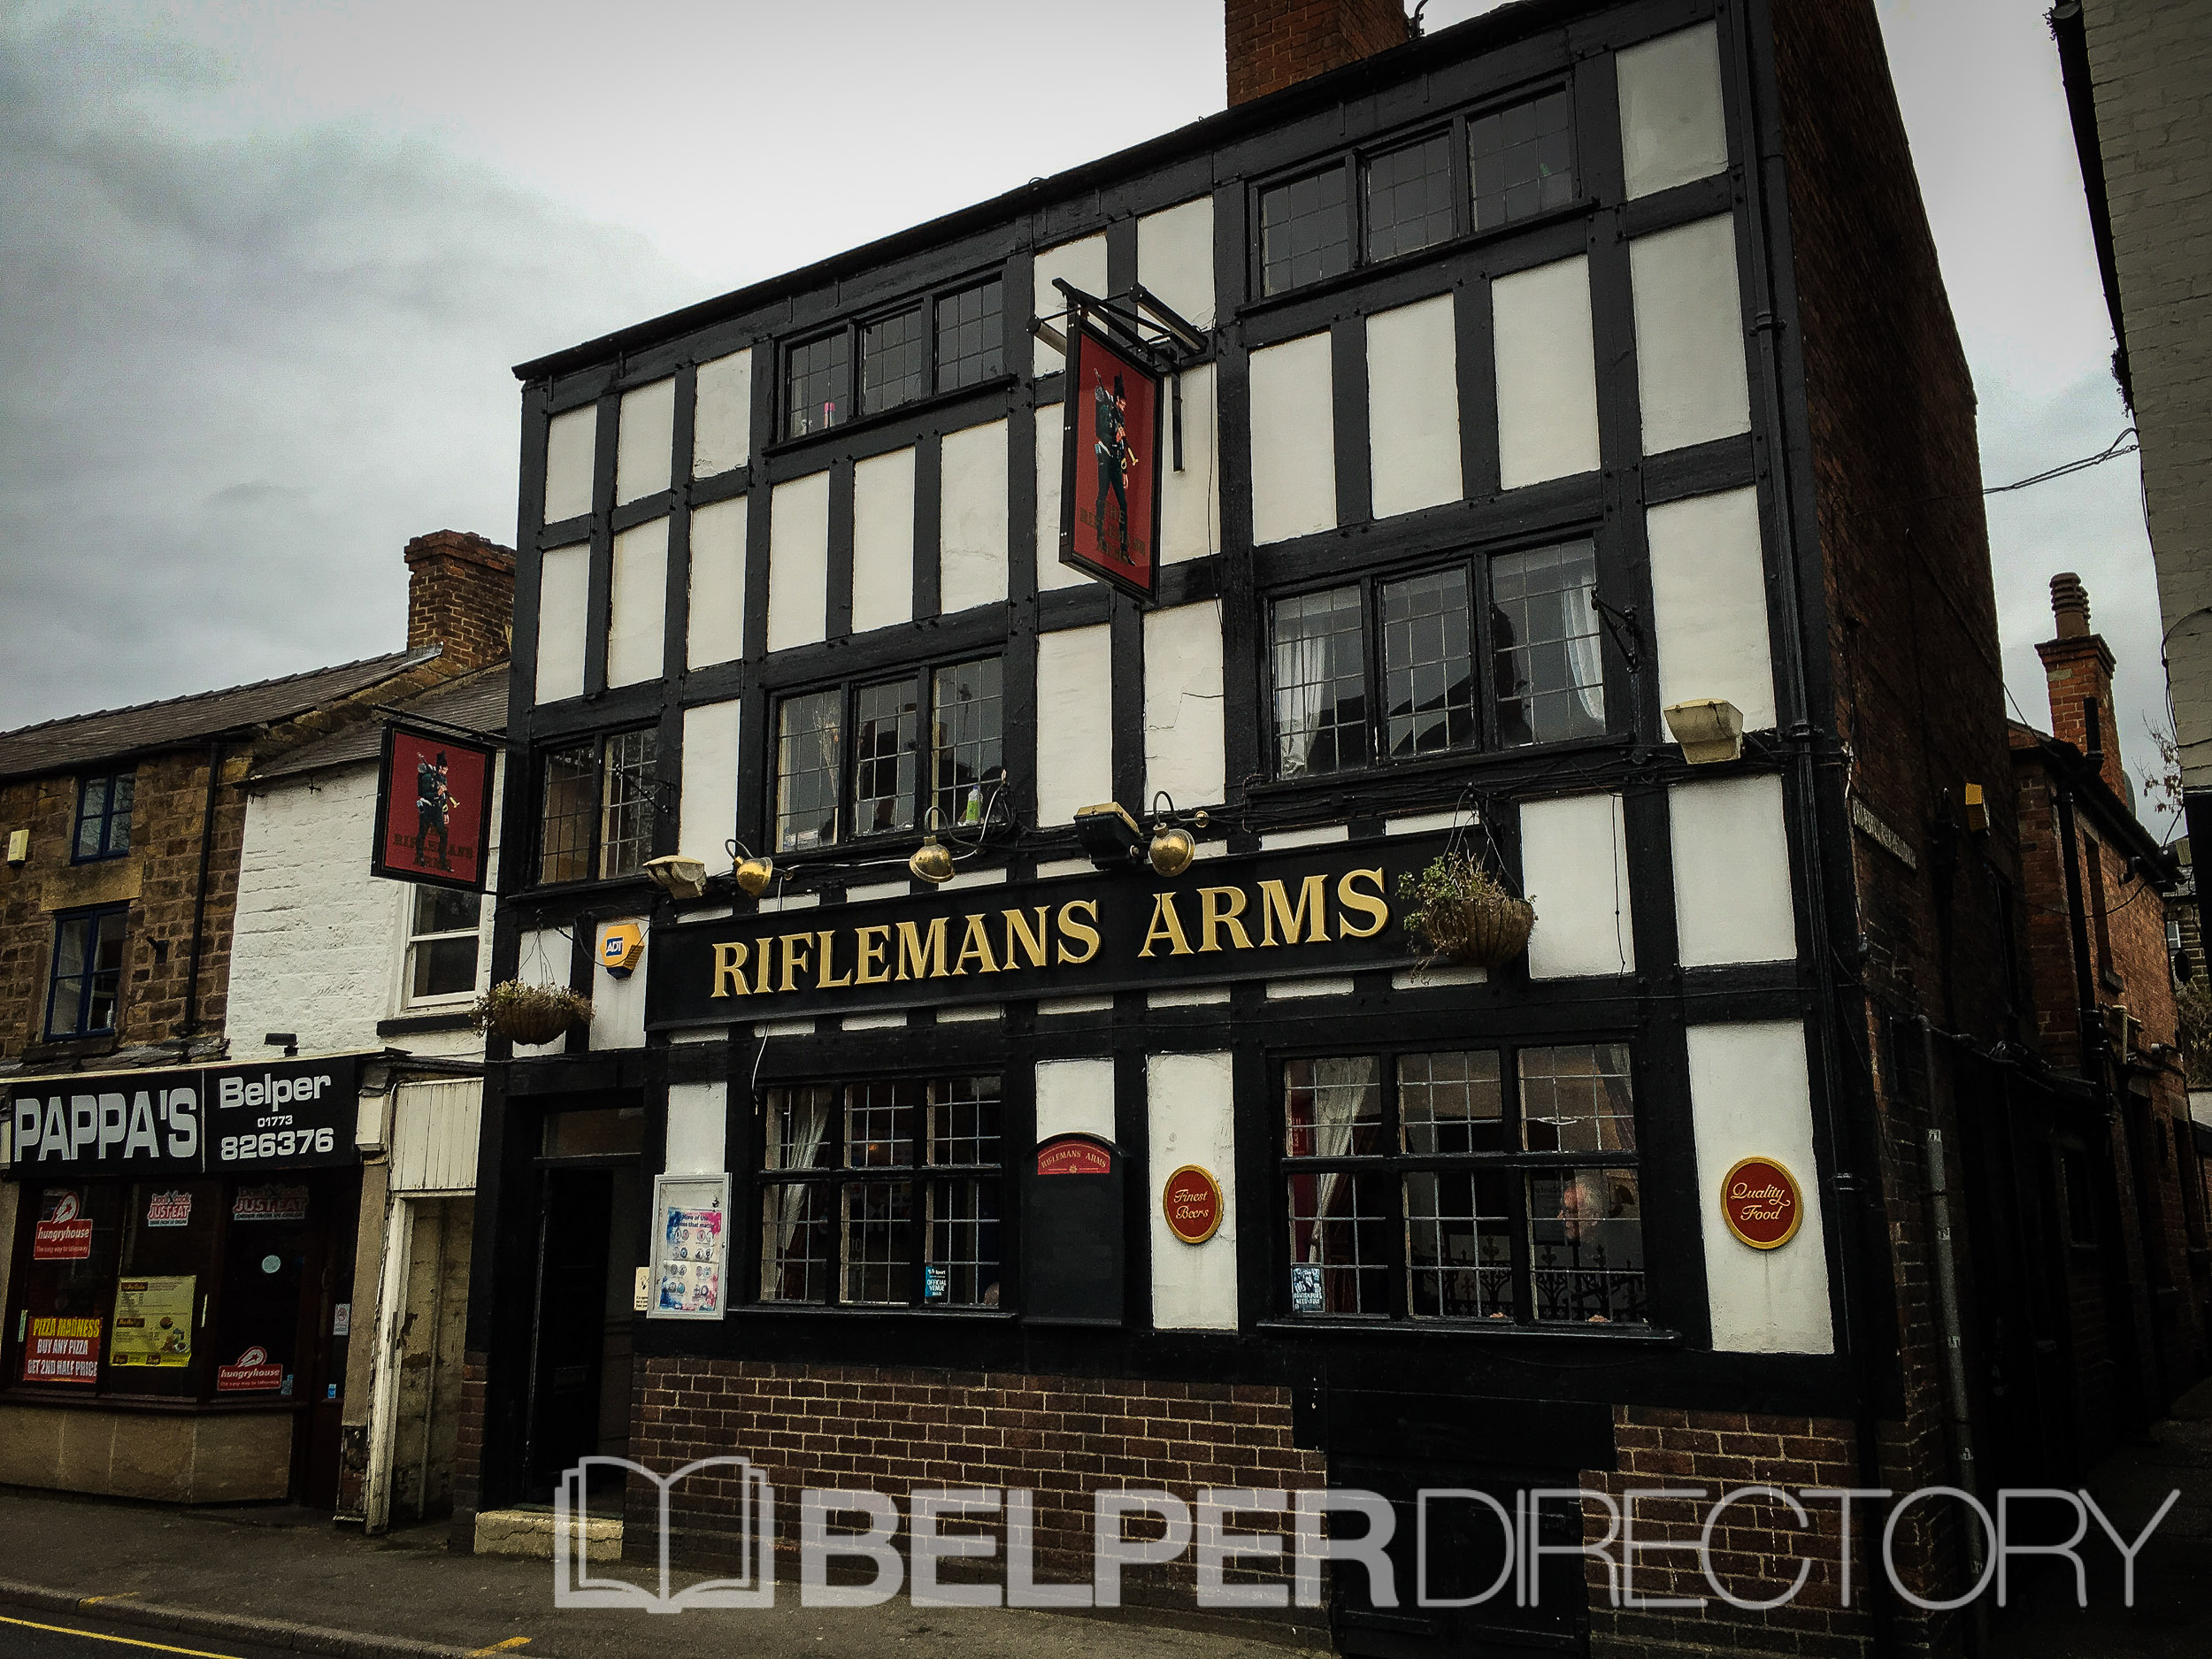 Riflemans Arms on Inter Search